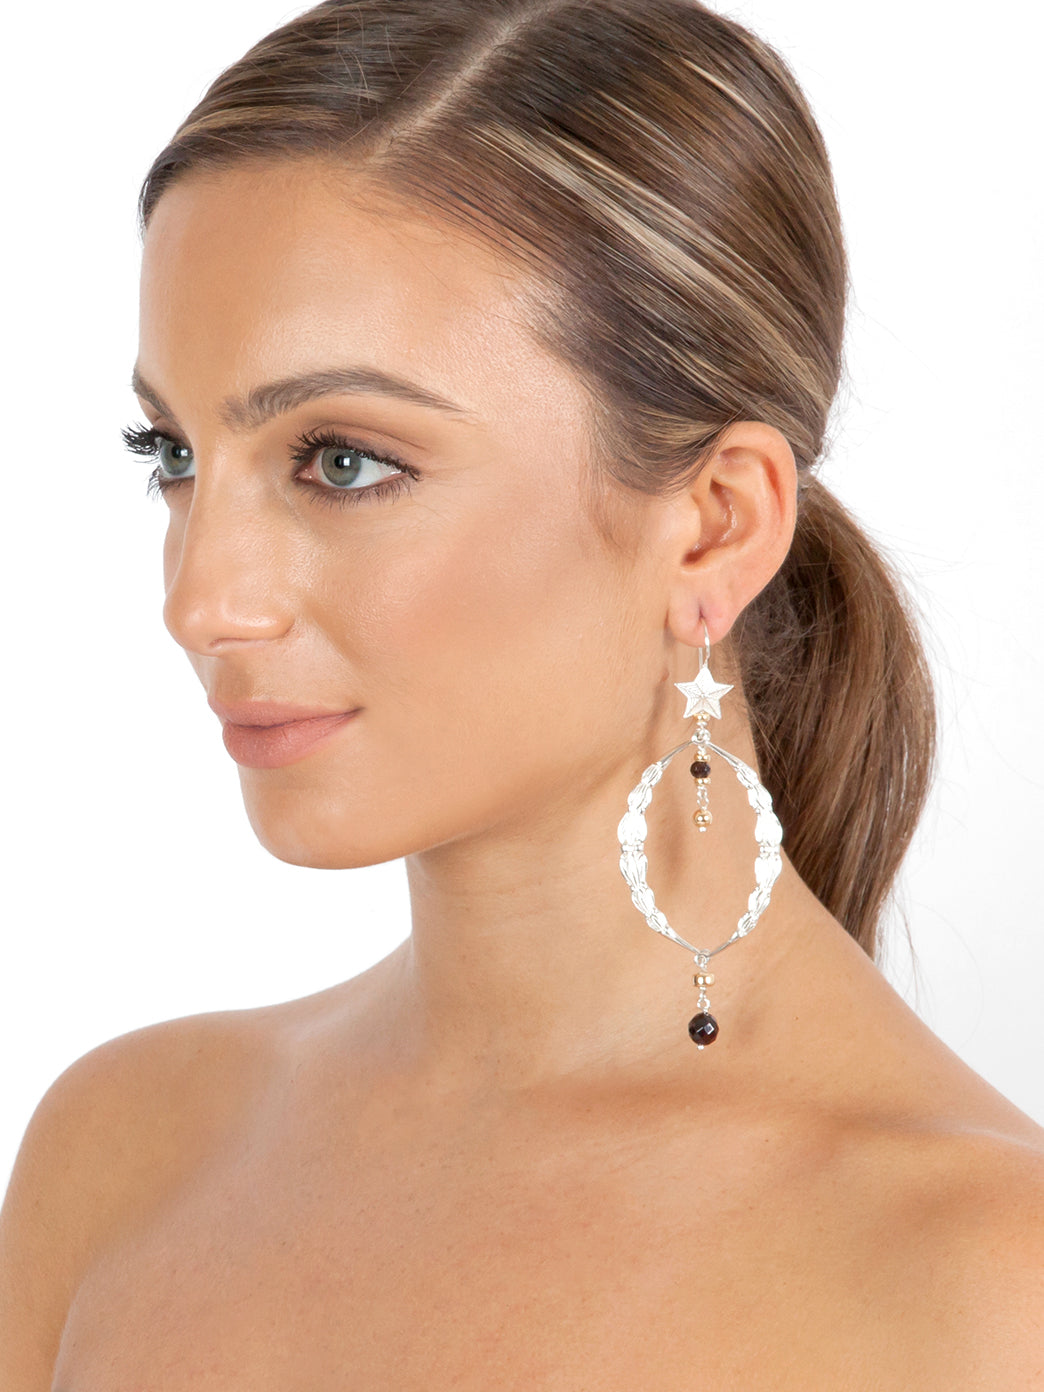 Fiorina Jewellery Magnificence Earrings Model